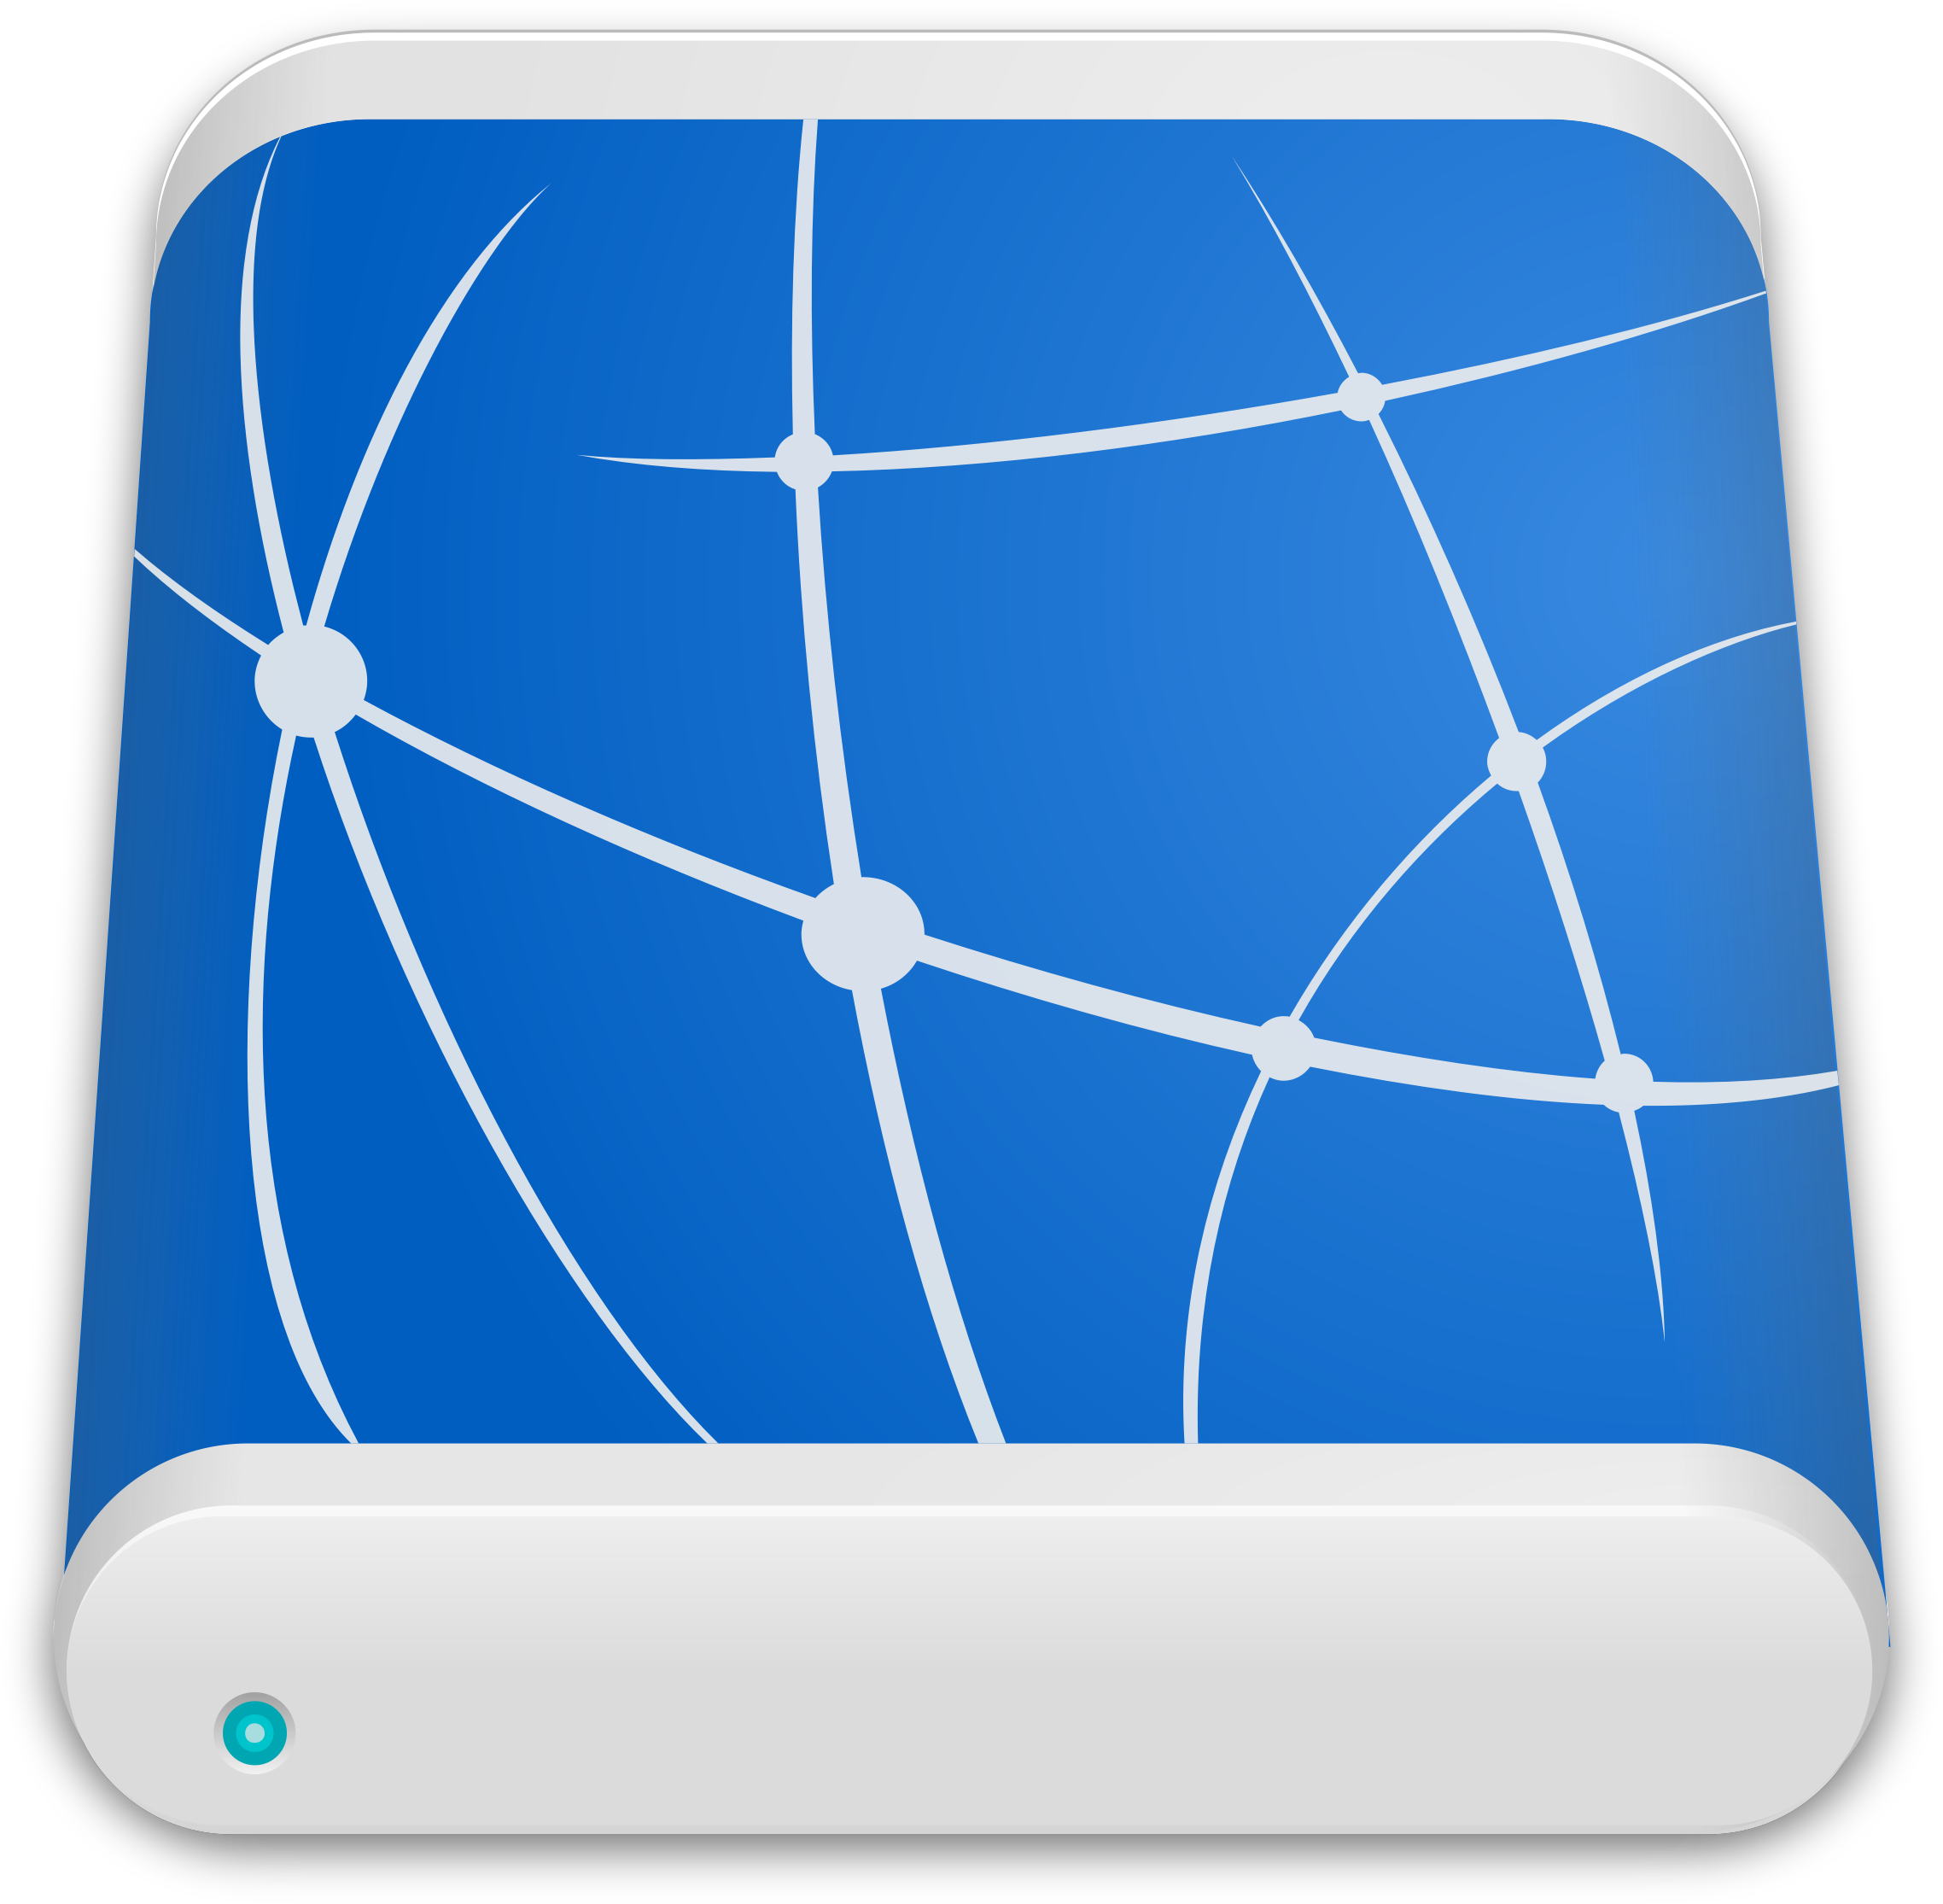 Remote Drive Icon 2 by sixsixfive